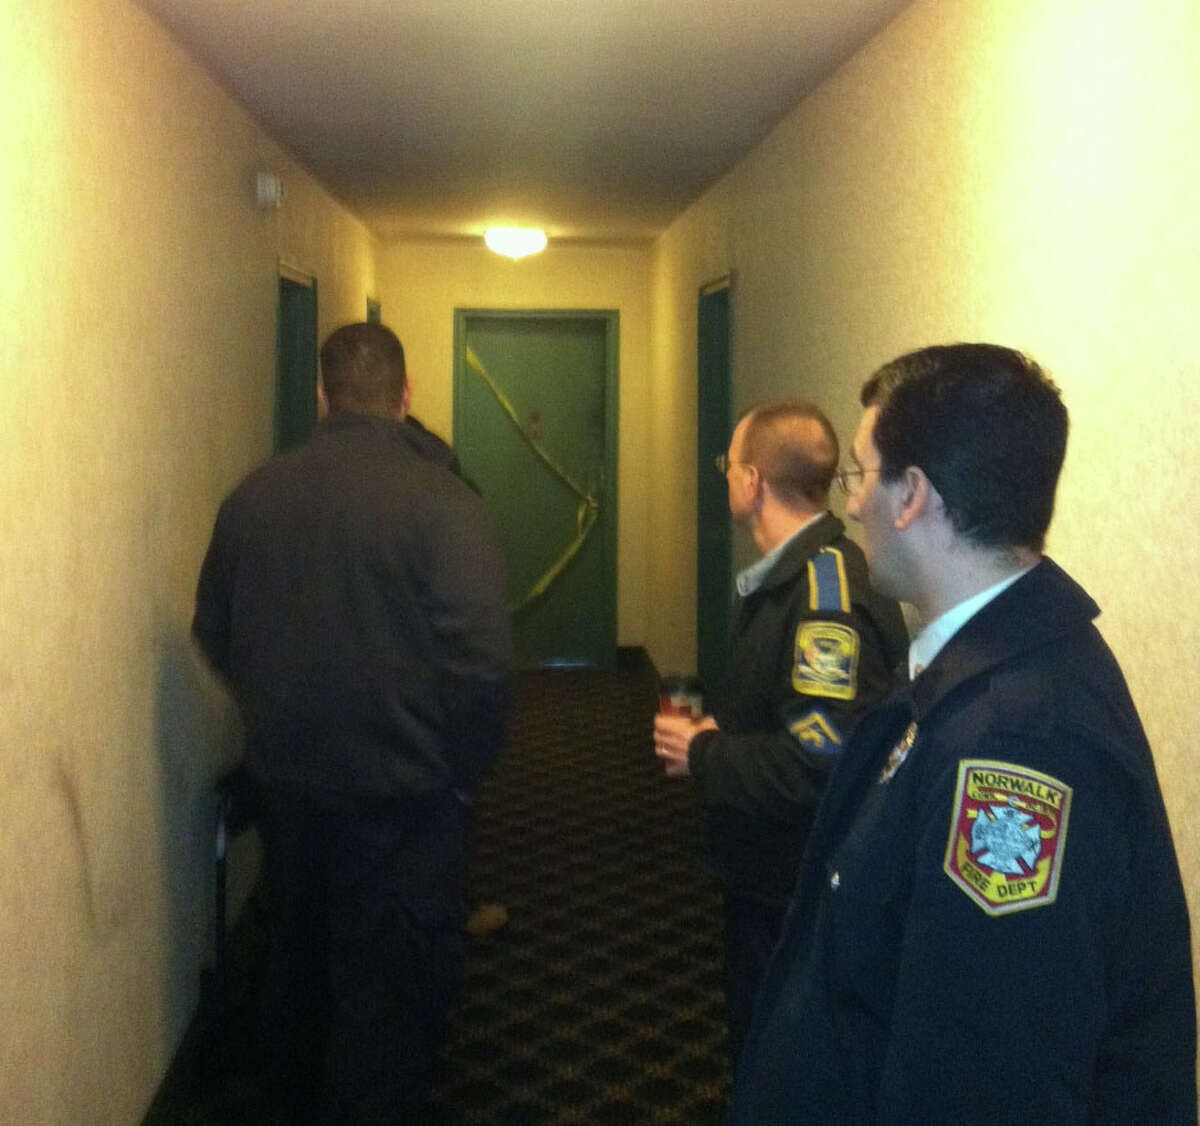 State and Norwalk fire investigators inspect a hallway of an apartment building in Norwalk, Conn. where two residents were hospitalized following a fire on Tuesday, Jan. 31, 2012. The residents were identified by neighbors as Judy O'Brien 62 and her mother, Marjorie Johnson, 92, mother. O'Brien died the following day.